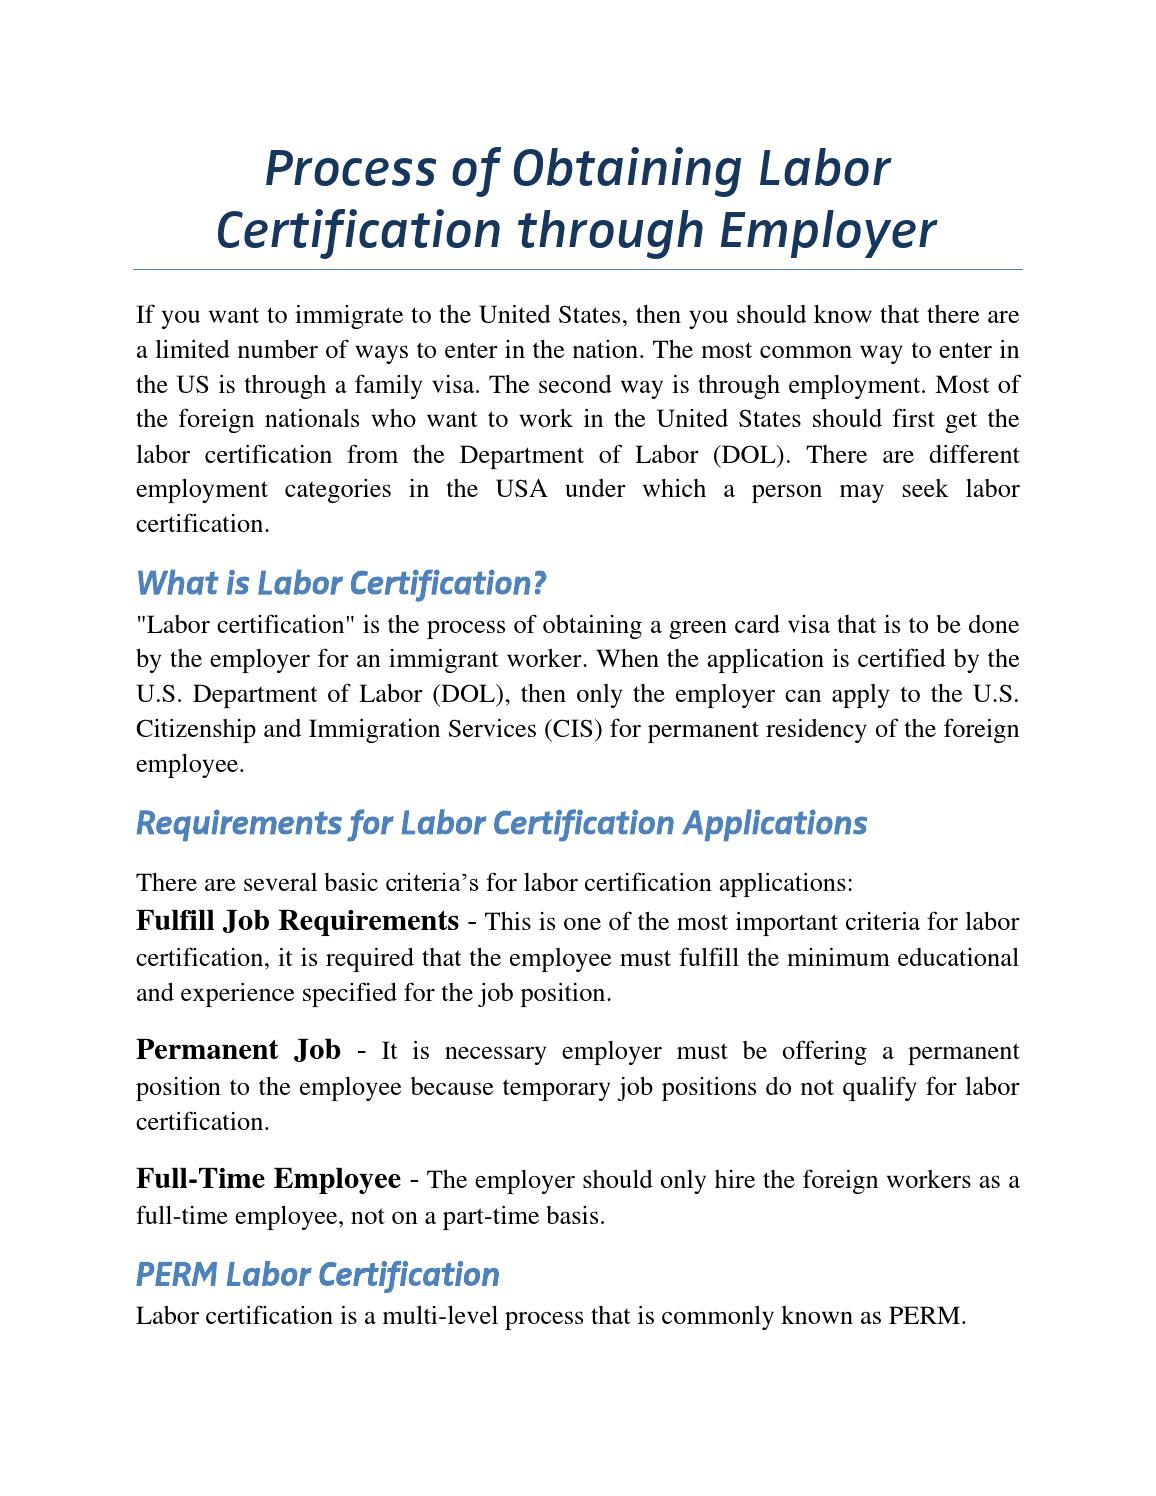 Process of obtaining labor certification through employer by Jackson ...